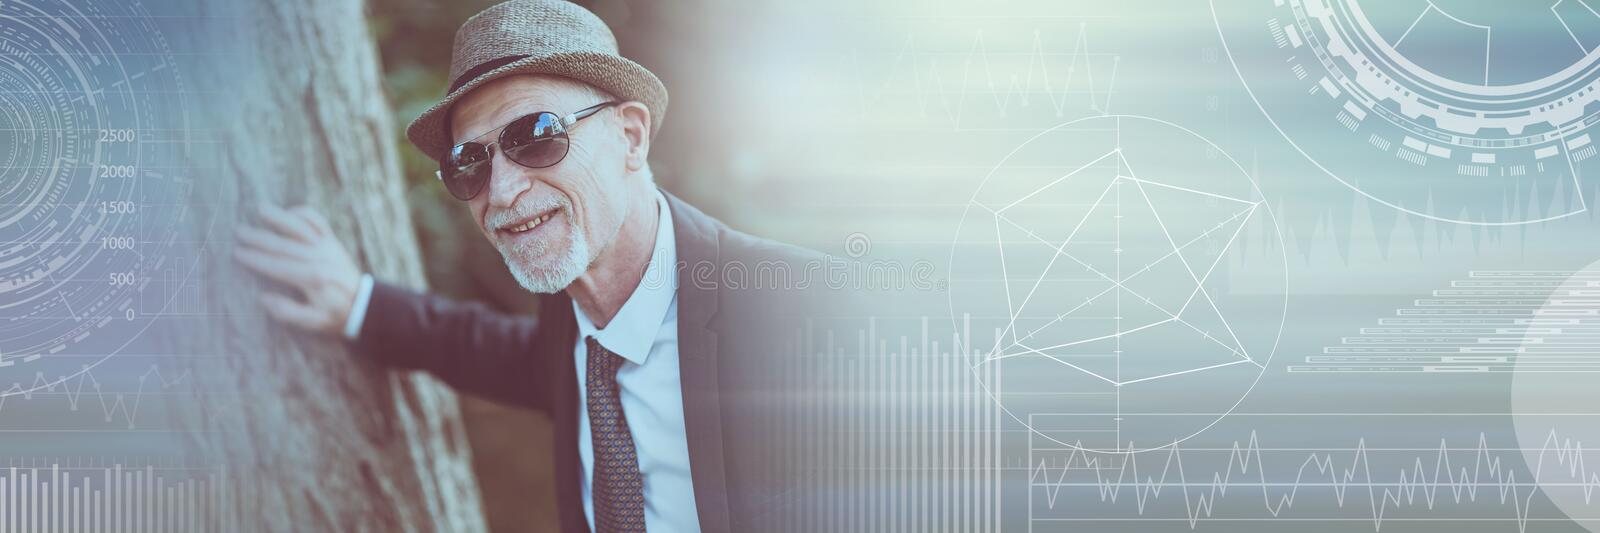 Portrait of mature man wearing sunglasses, light effect; panoramic banner royalty free stock photo